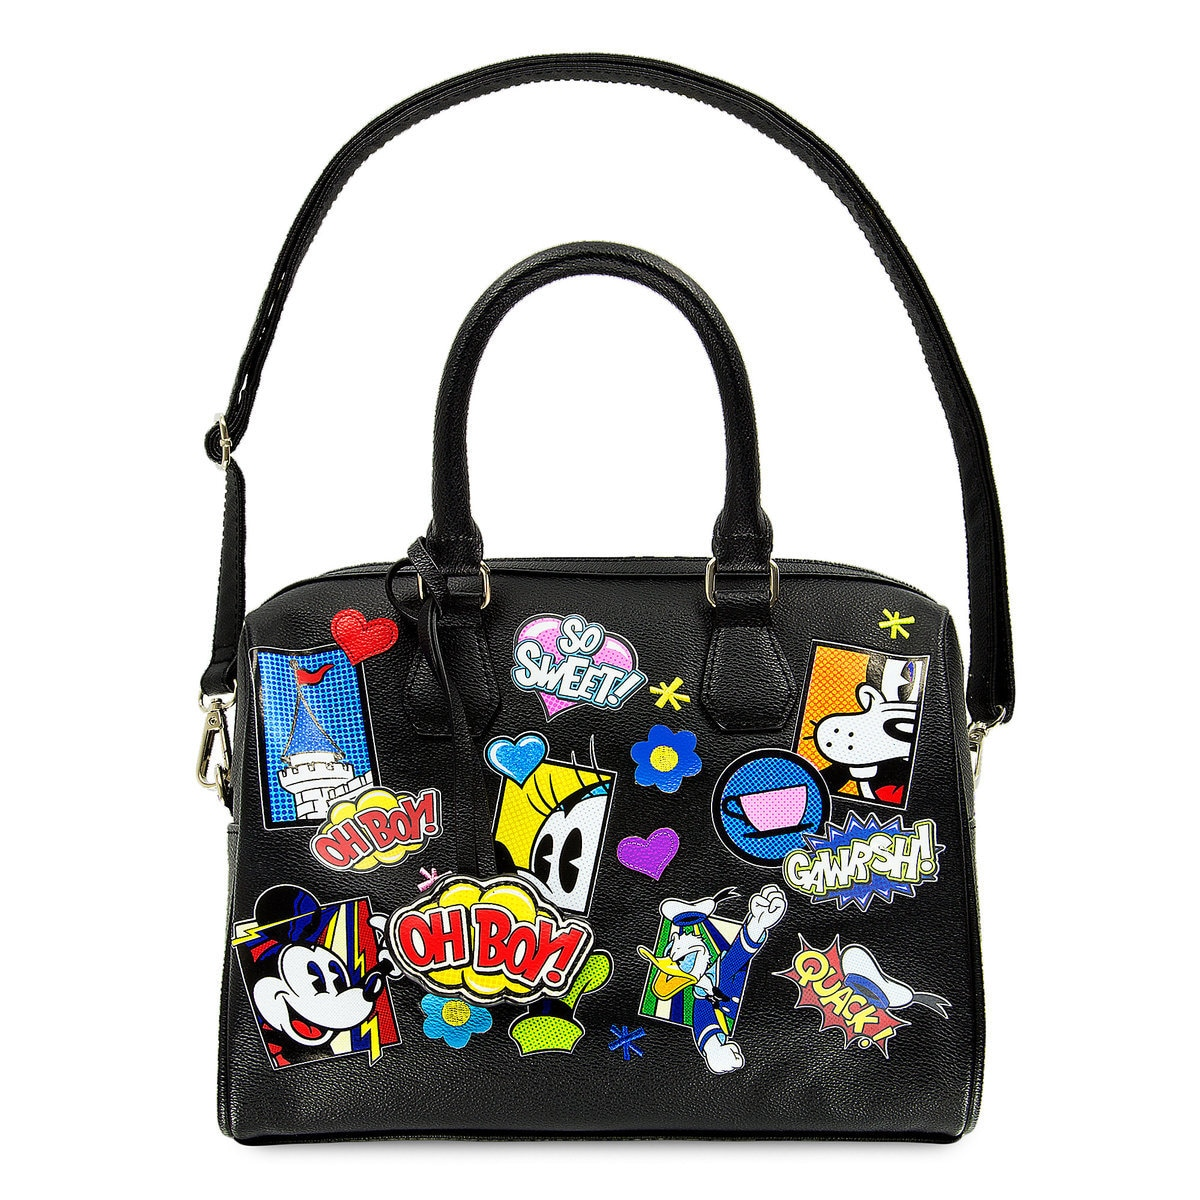 3373ae4f308 Product Image of Mickey Mouse and Friends Comic Bag   1